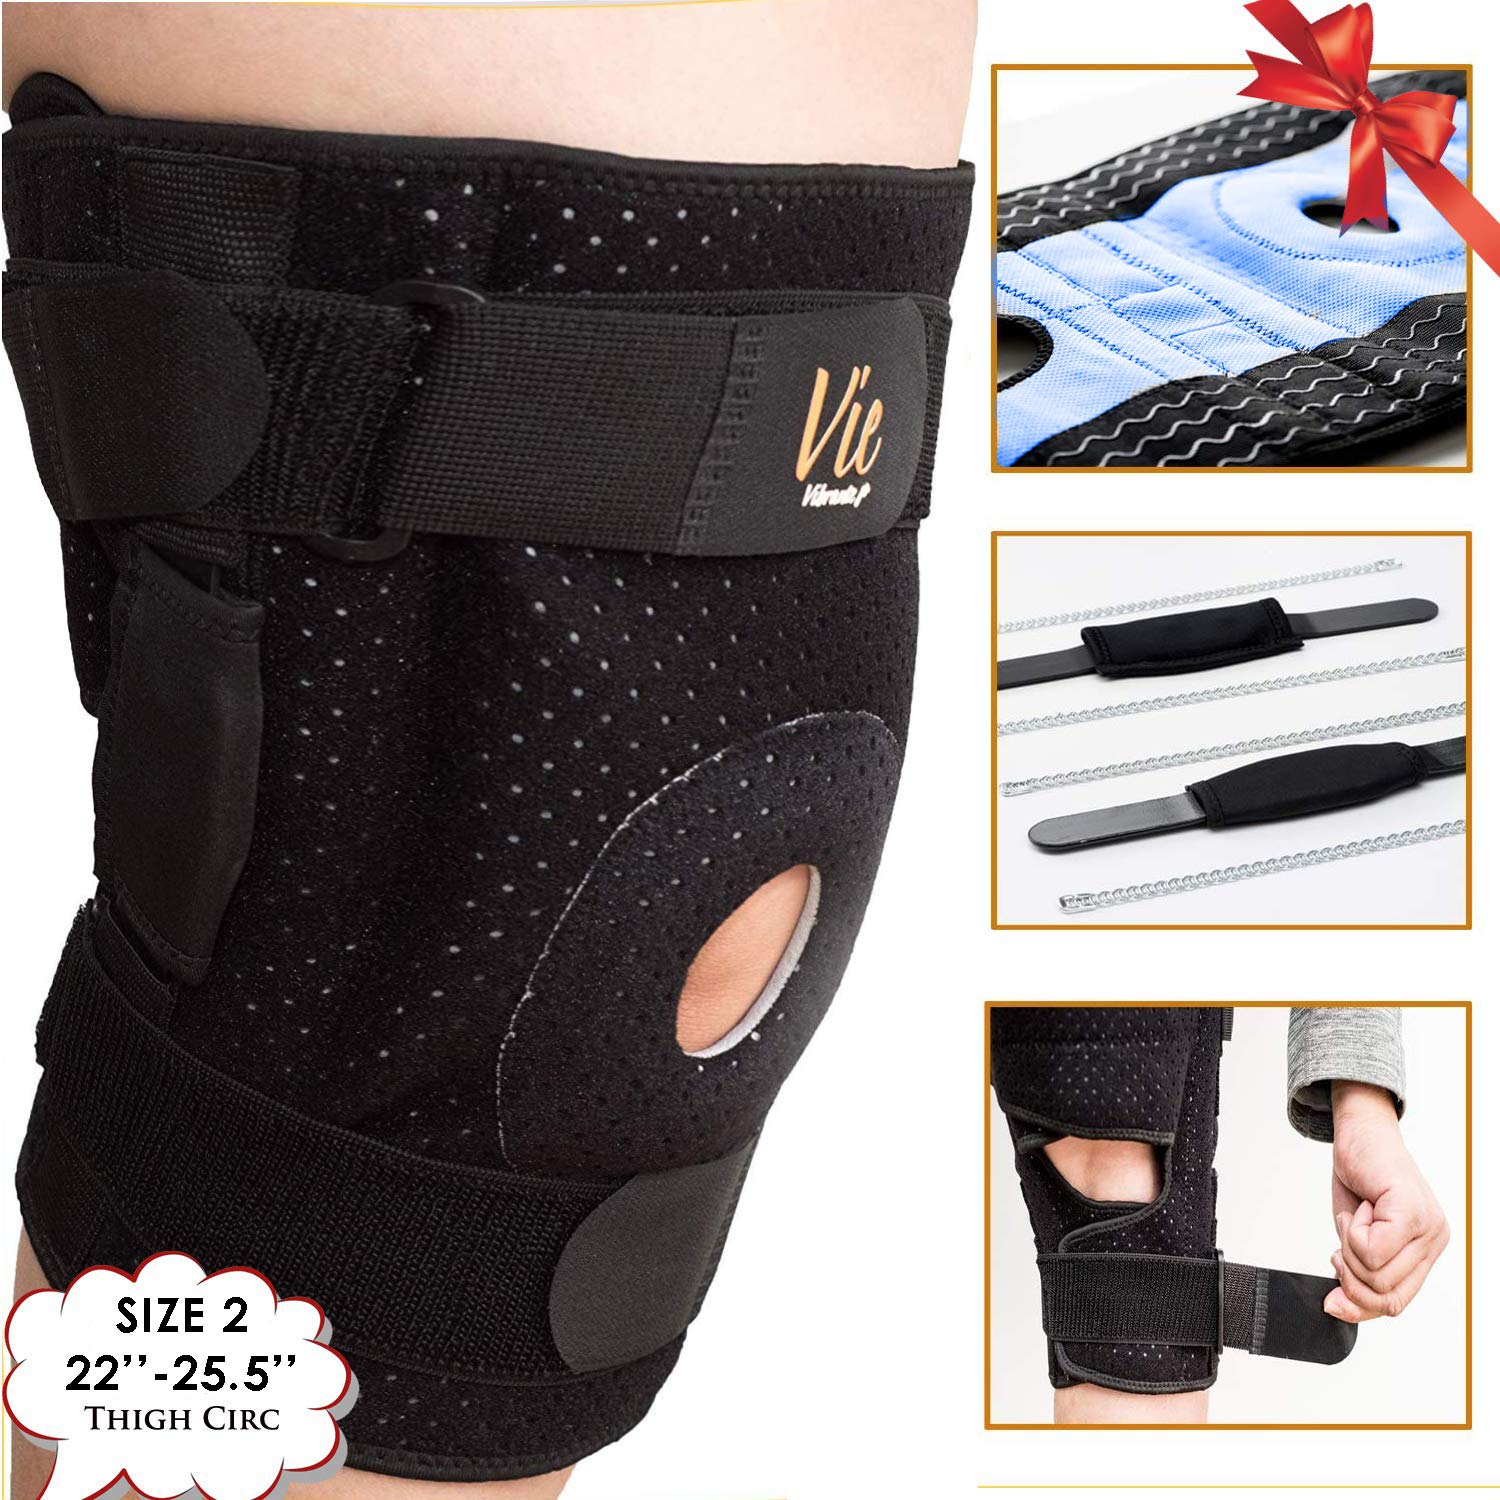 Hinged Knee Brace Plus Size - Newly Engineered Knee Braces with Enhancement on Flexibility, Extra Supportive, Non-Slip and Non Bulky - Wrap Around fit Larger Legs for Men Women 22-25.5 Vie Vibrante by VieVibrante